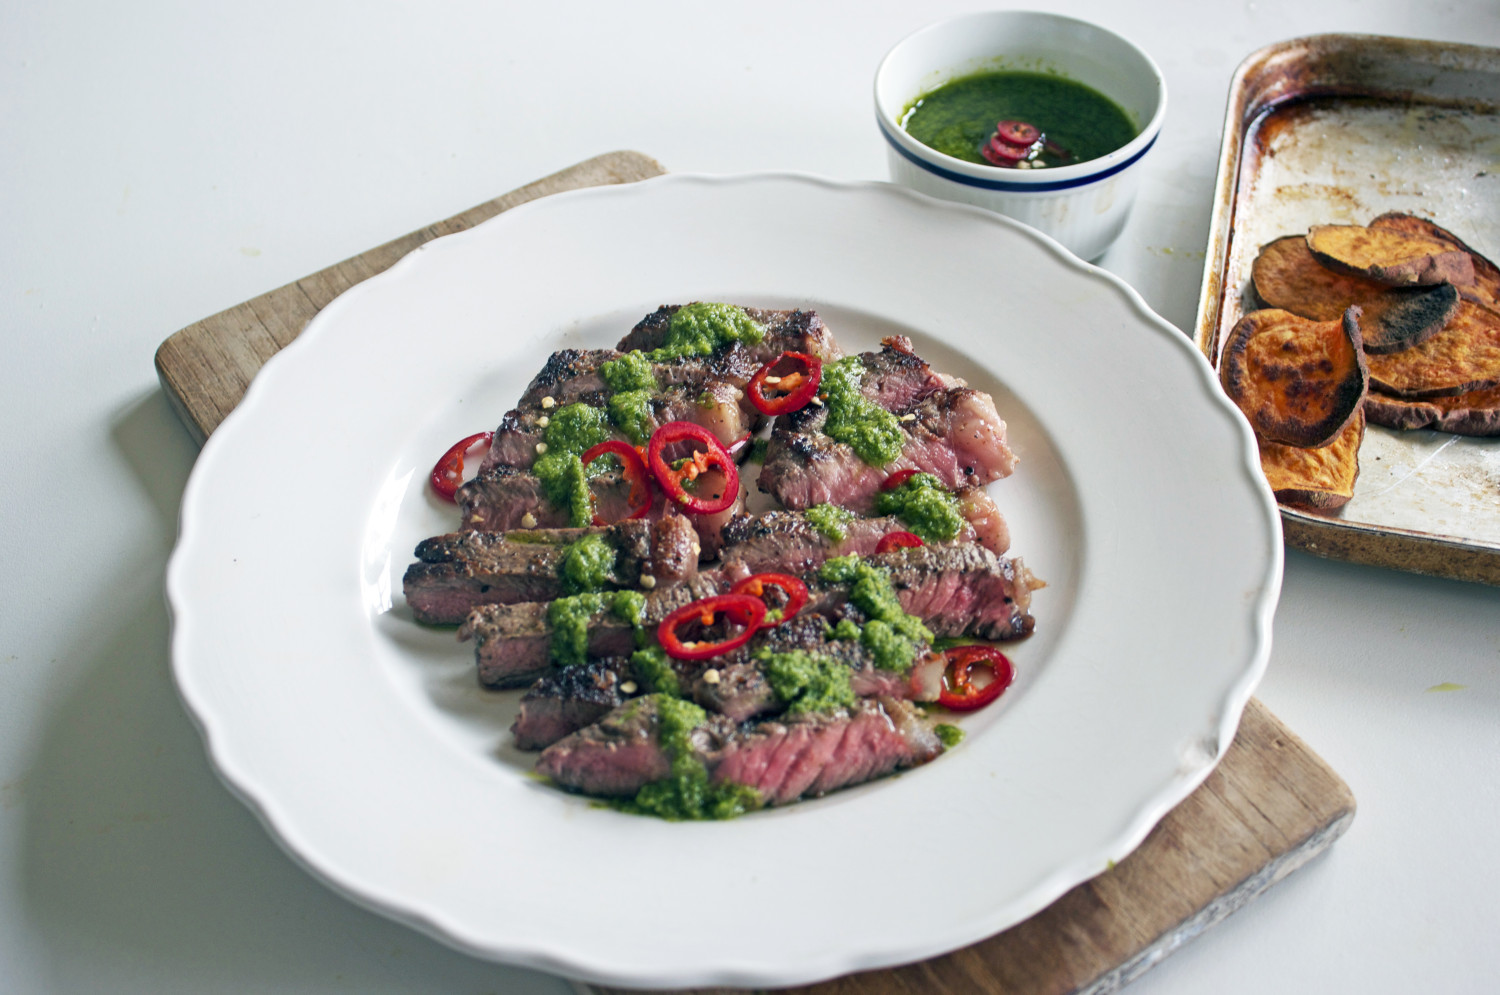 World Cup Argentinean Steak Recipe With Chimichurri